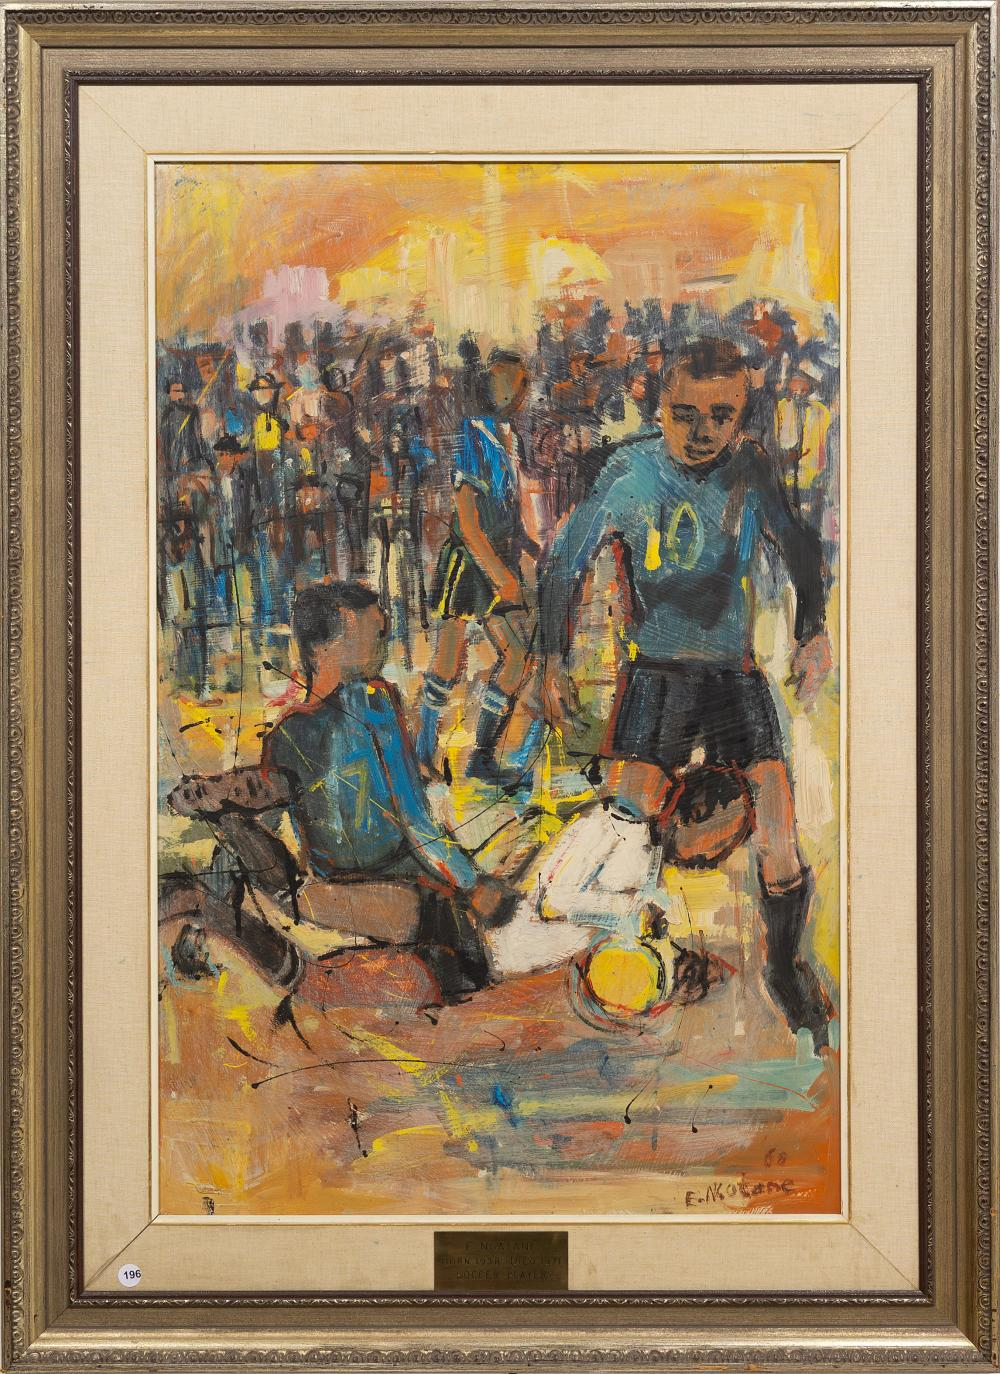 Ephraim Ngatane (SA 1938 - 1971) Oil, Soccer Players, Signed & Dated '68 Illustrated on Page 72 of